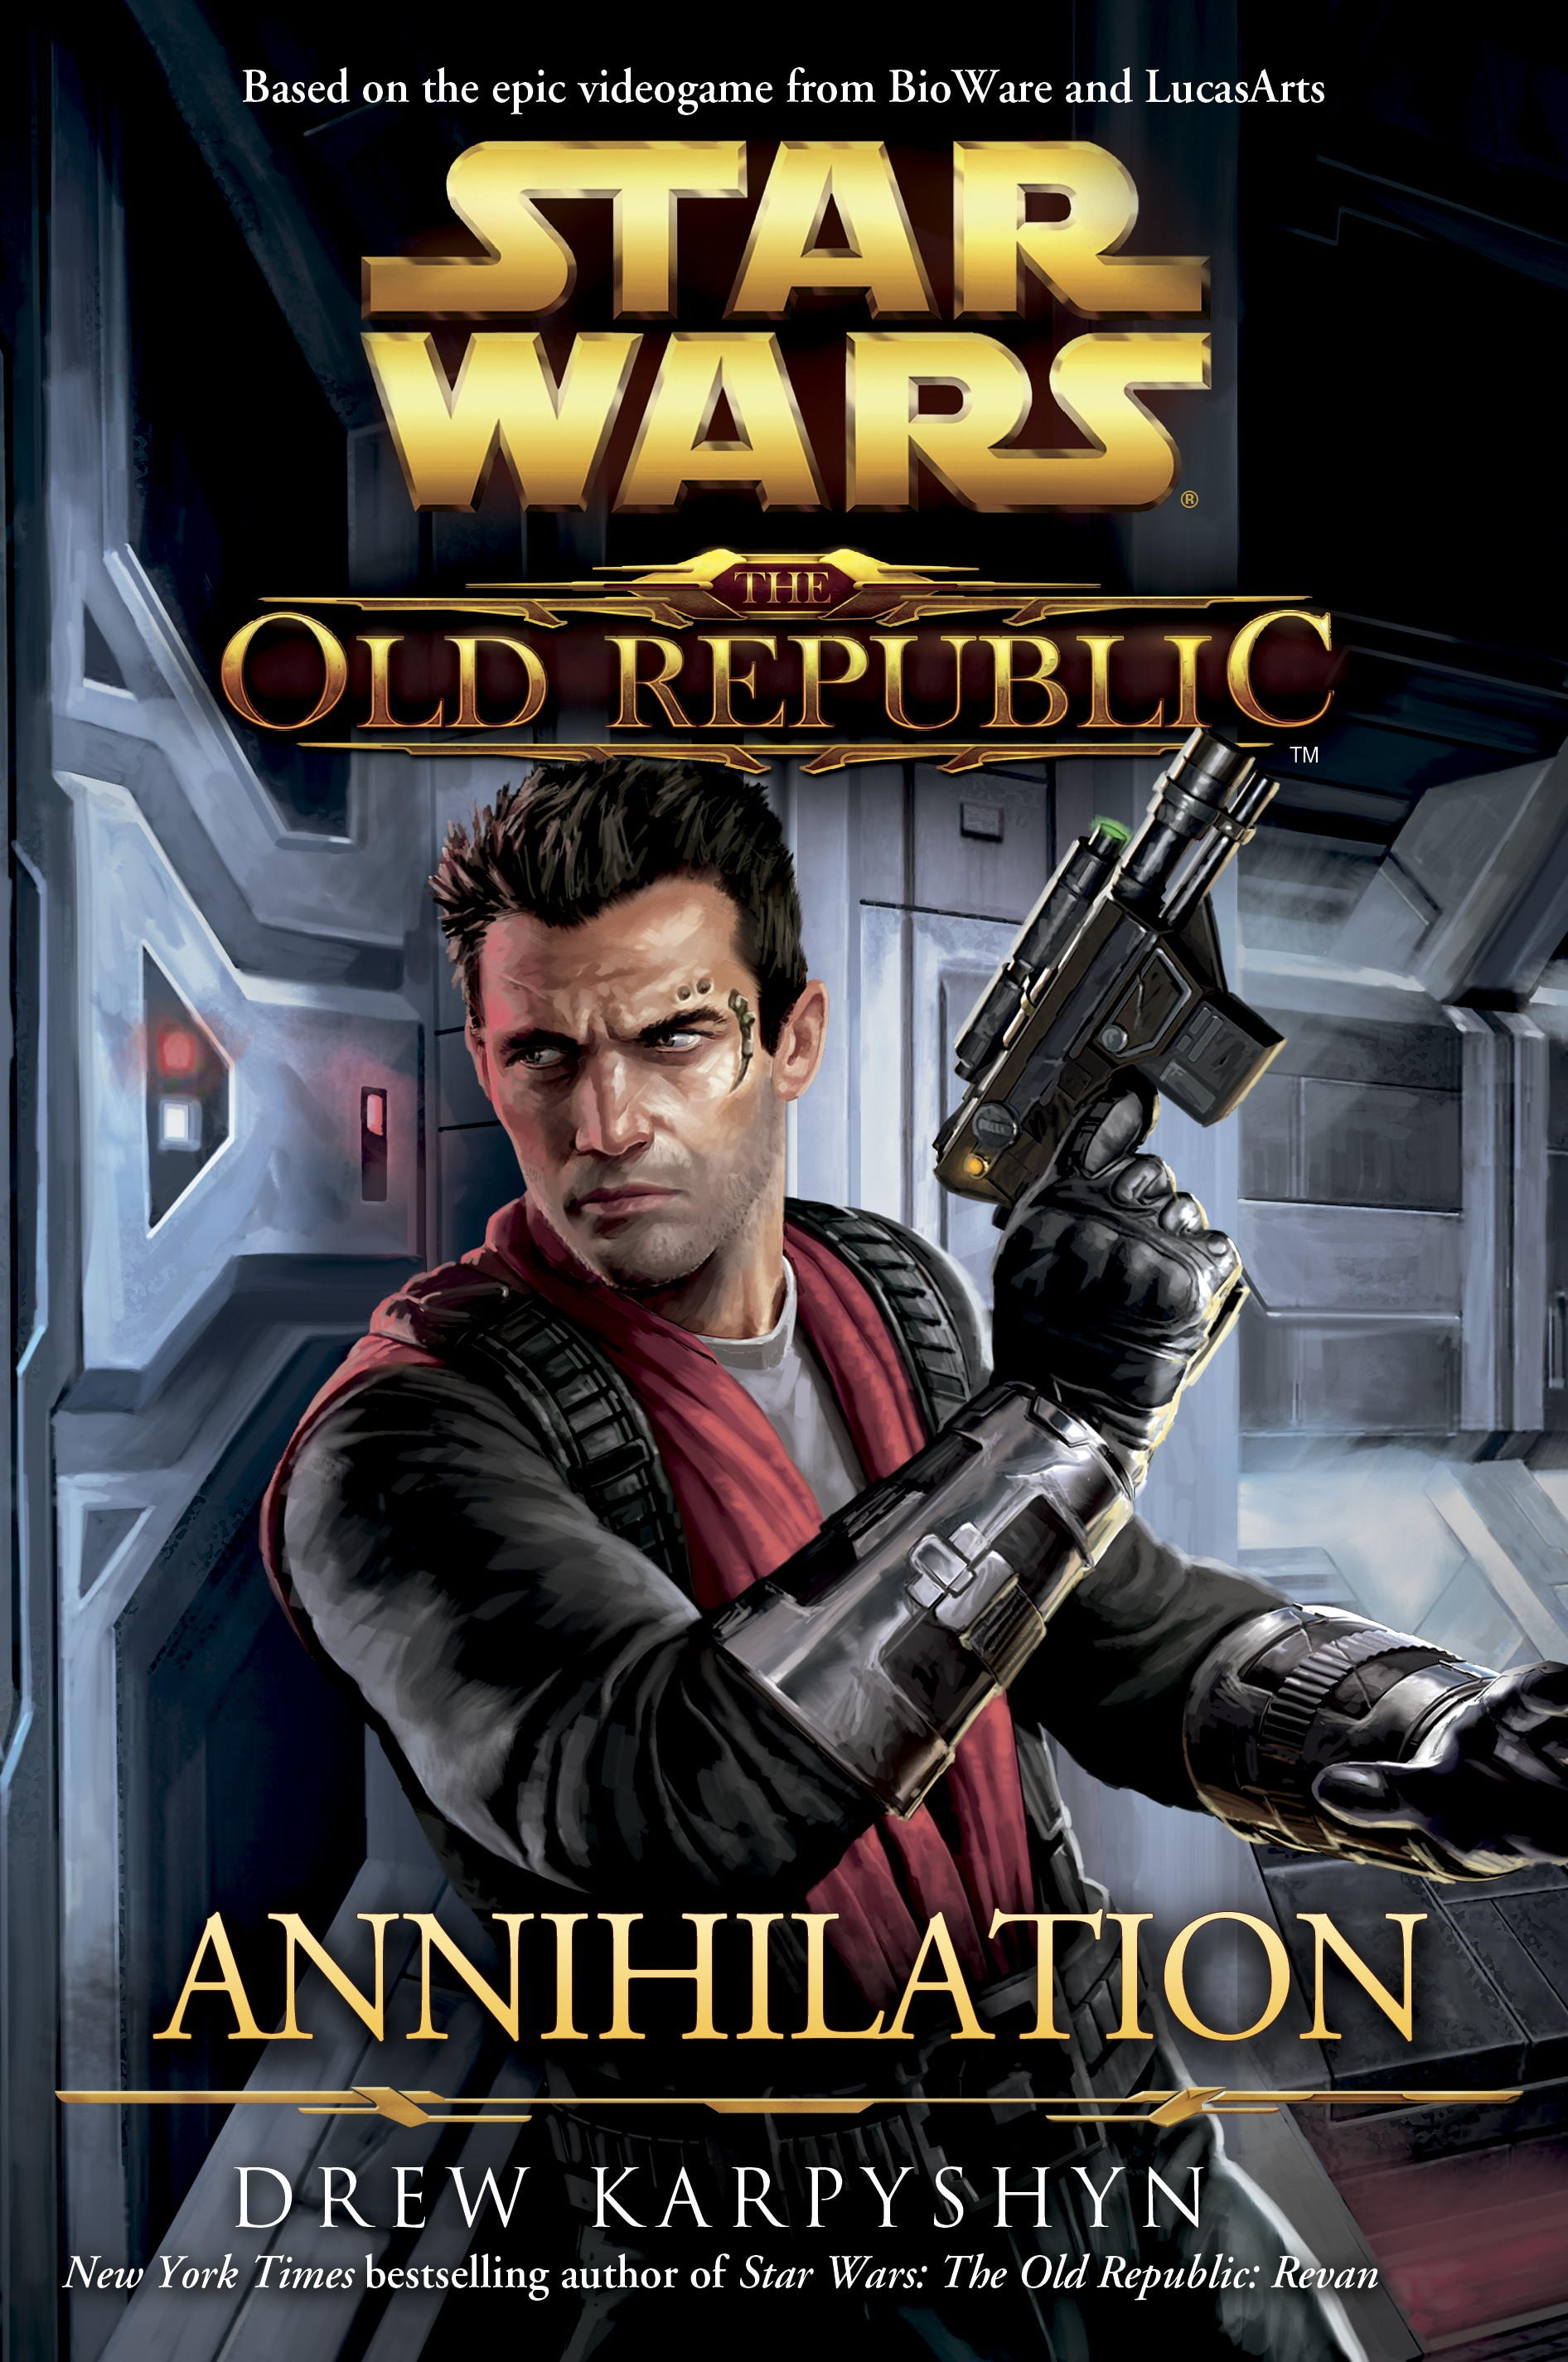 Star Wars The Old Republic: Annihilation